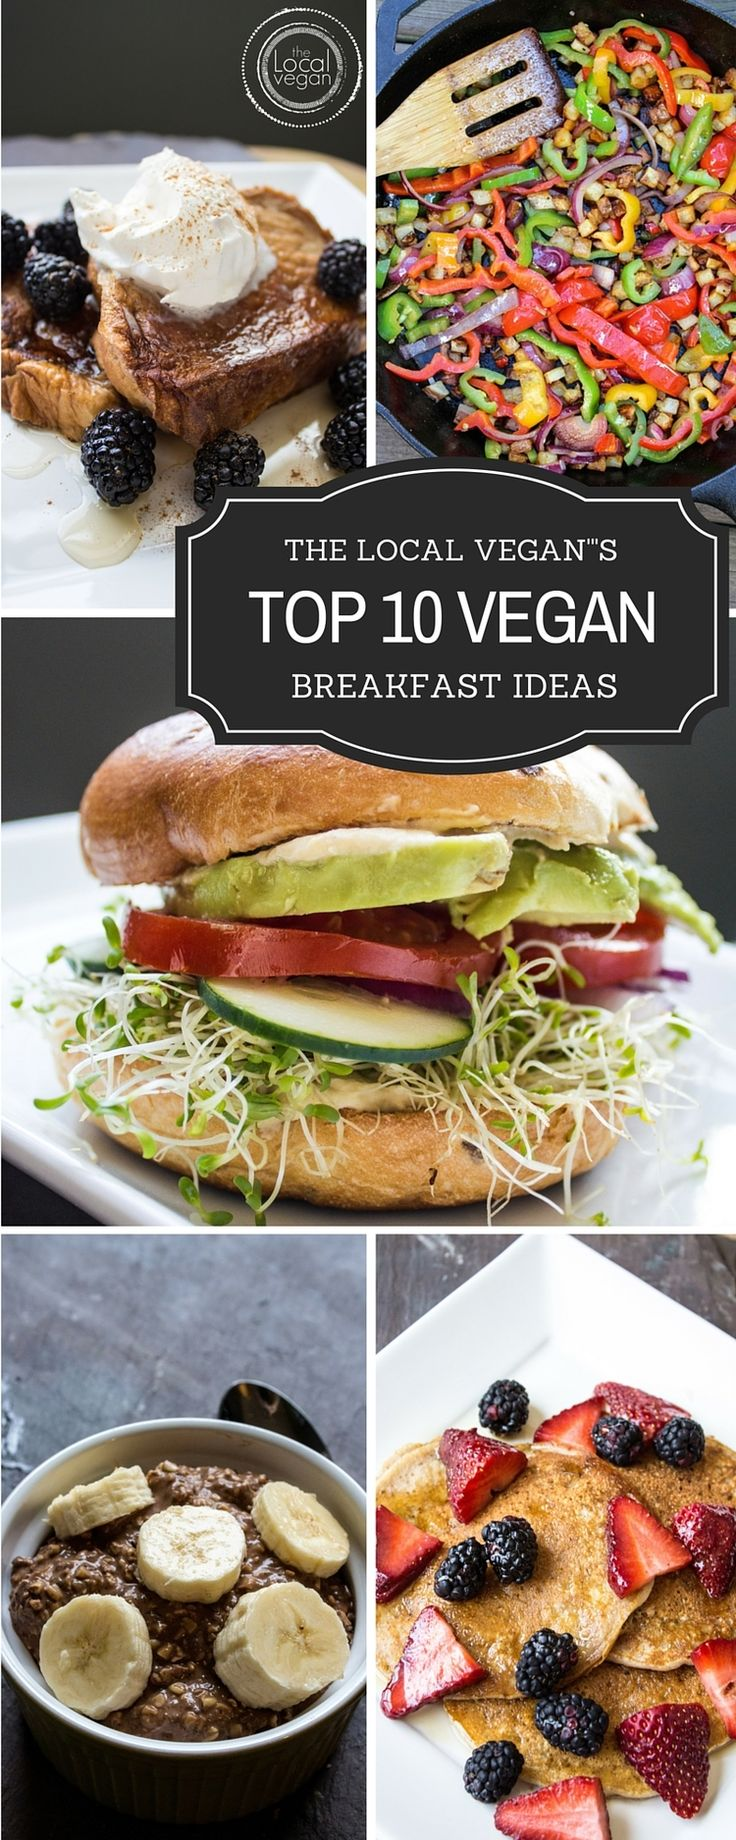 Solve the  vegan breakfast dilemma! Top 10 vegan breakfast ideas.       Avocado Toast - Avocado toast has taken over! I'm spotting on breakfast  menus all over.  There are many different ways to prepare avocado toast  so your tastebuds won't...